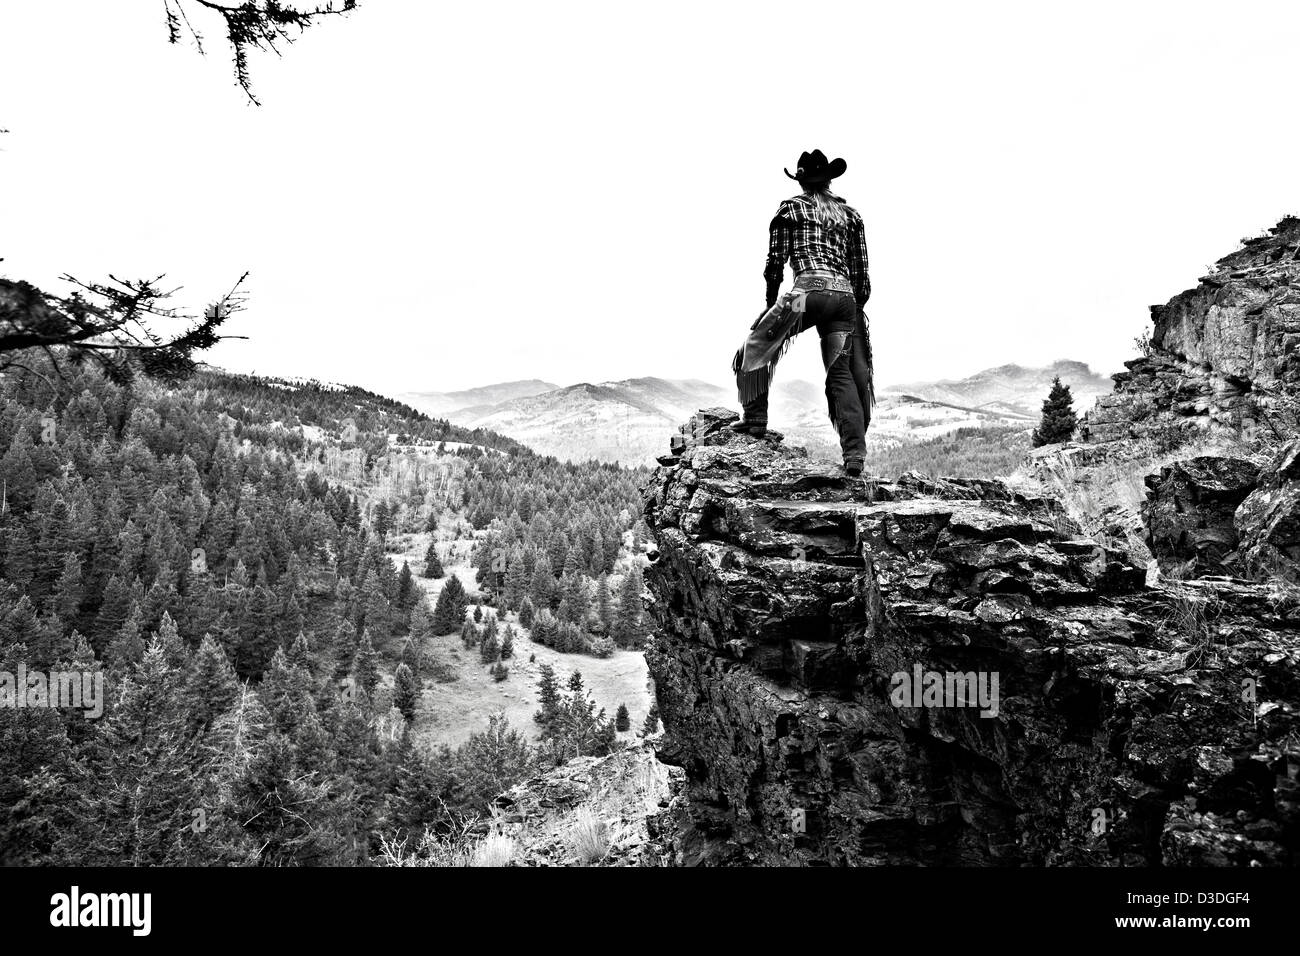 Wrangler surveying forestry view from Sheeps rock, Montana, USA - Stock Image